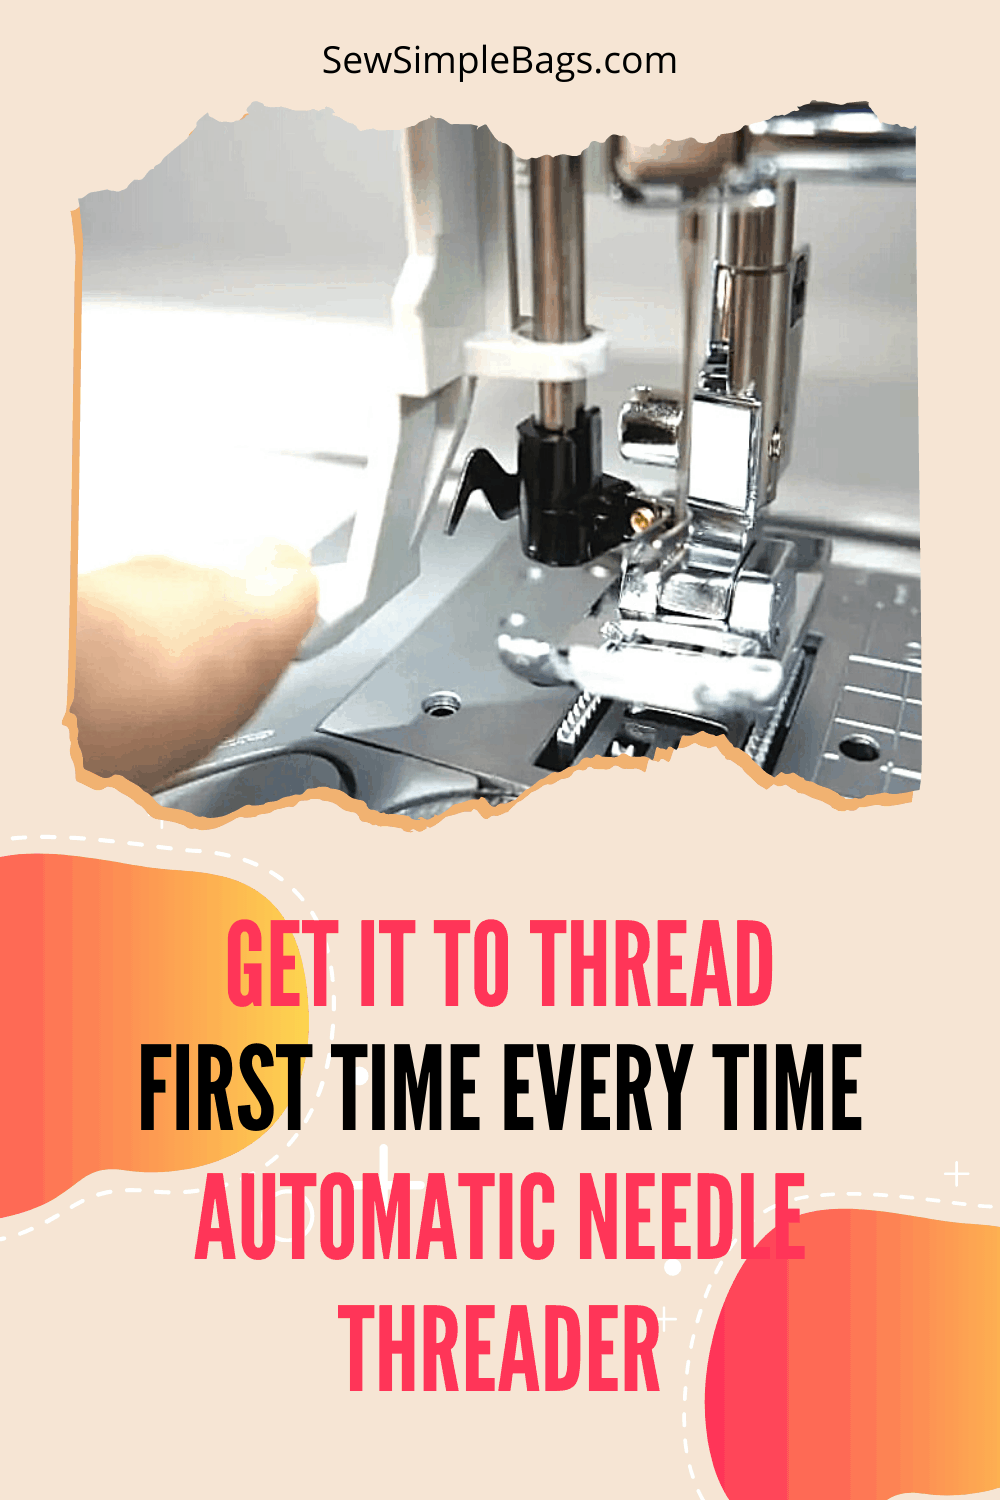 to use the automatic needle threader and get it to thread your sewing machine first time, every time. Close up image of automatic needle threader.